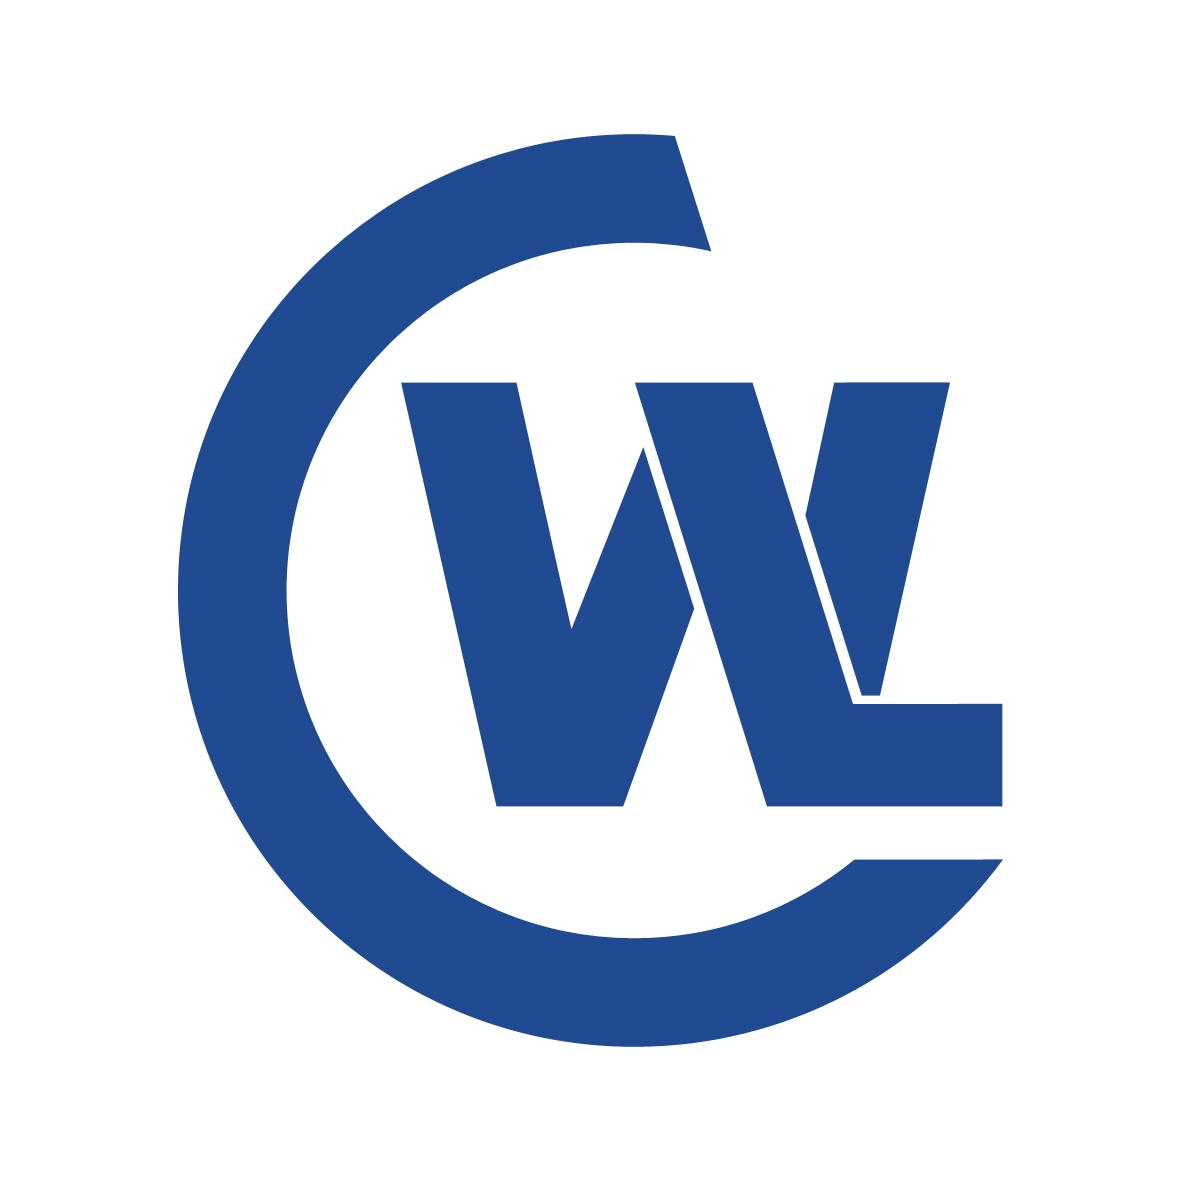 logo for Compagnie des wagons-lits